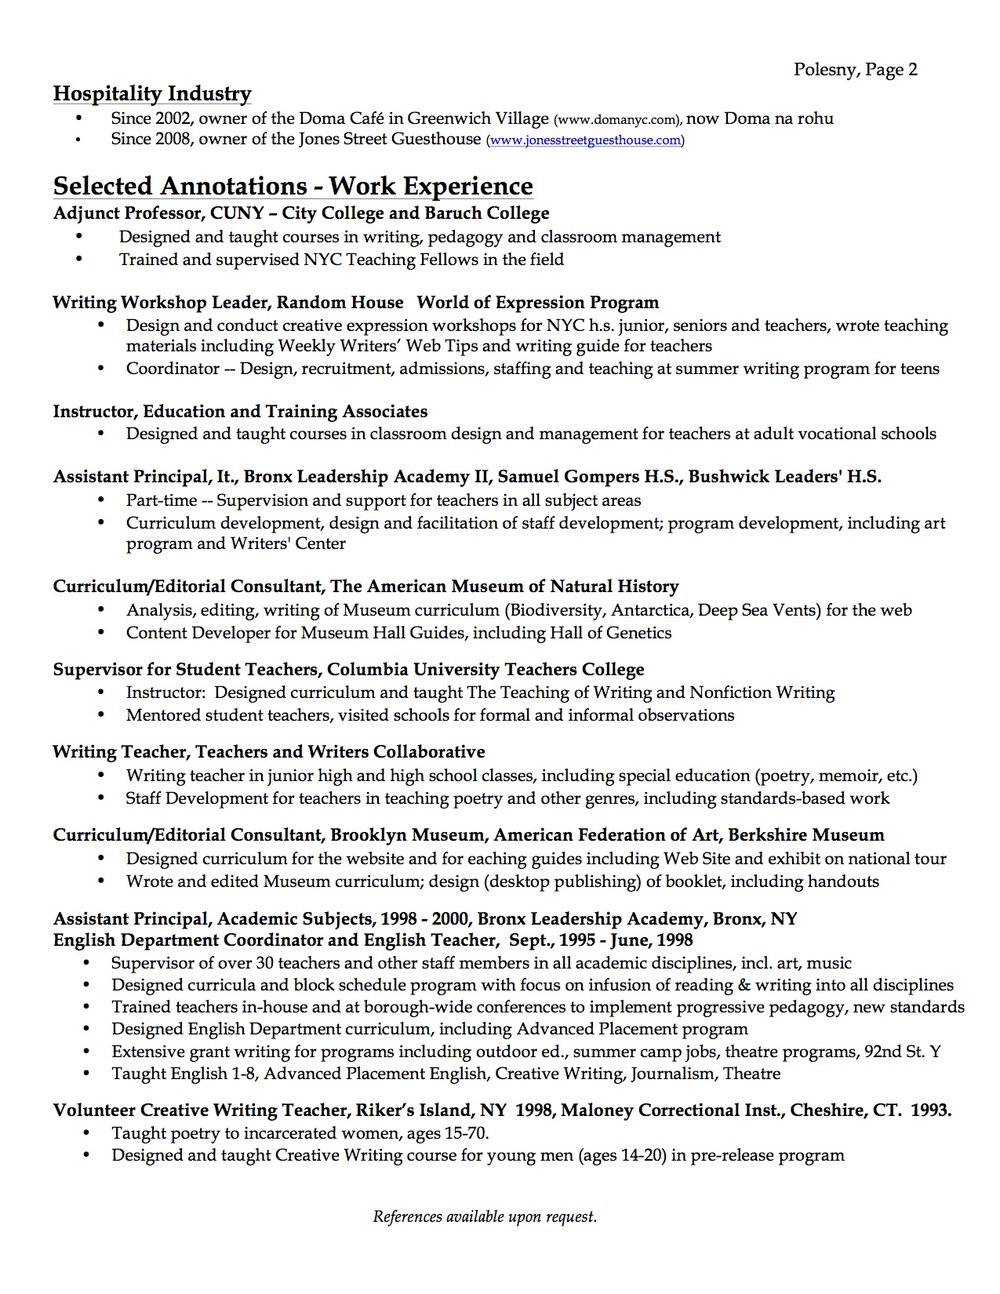 example of correctional nurse cv